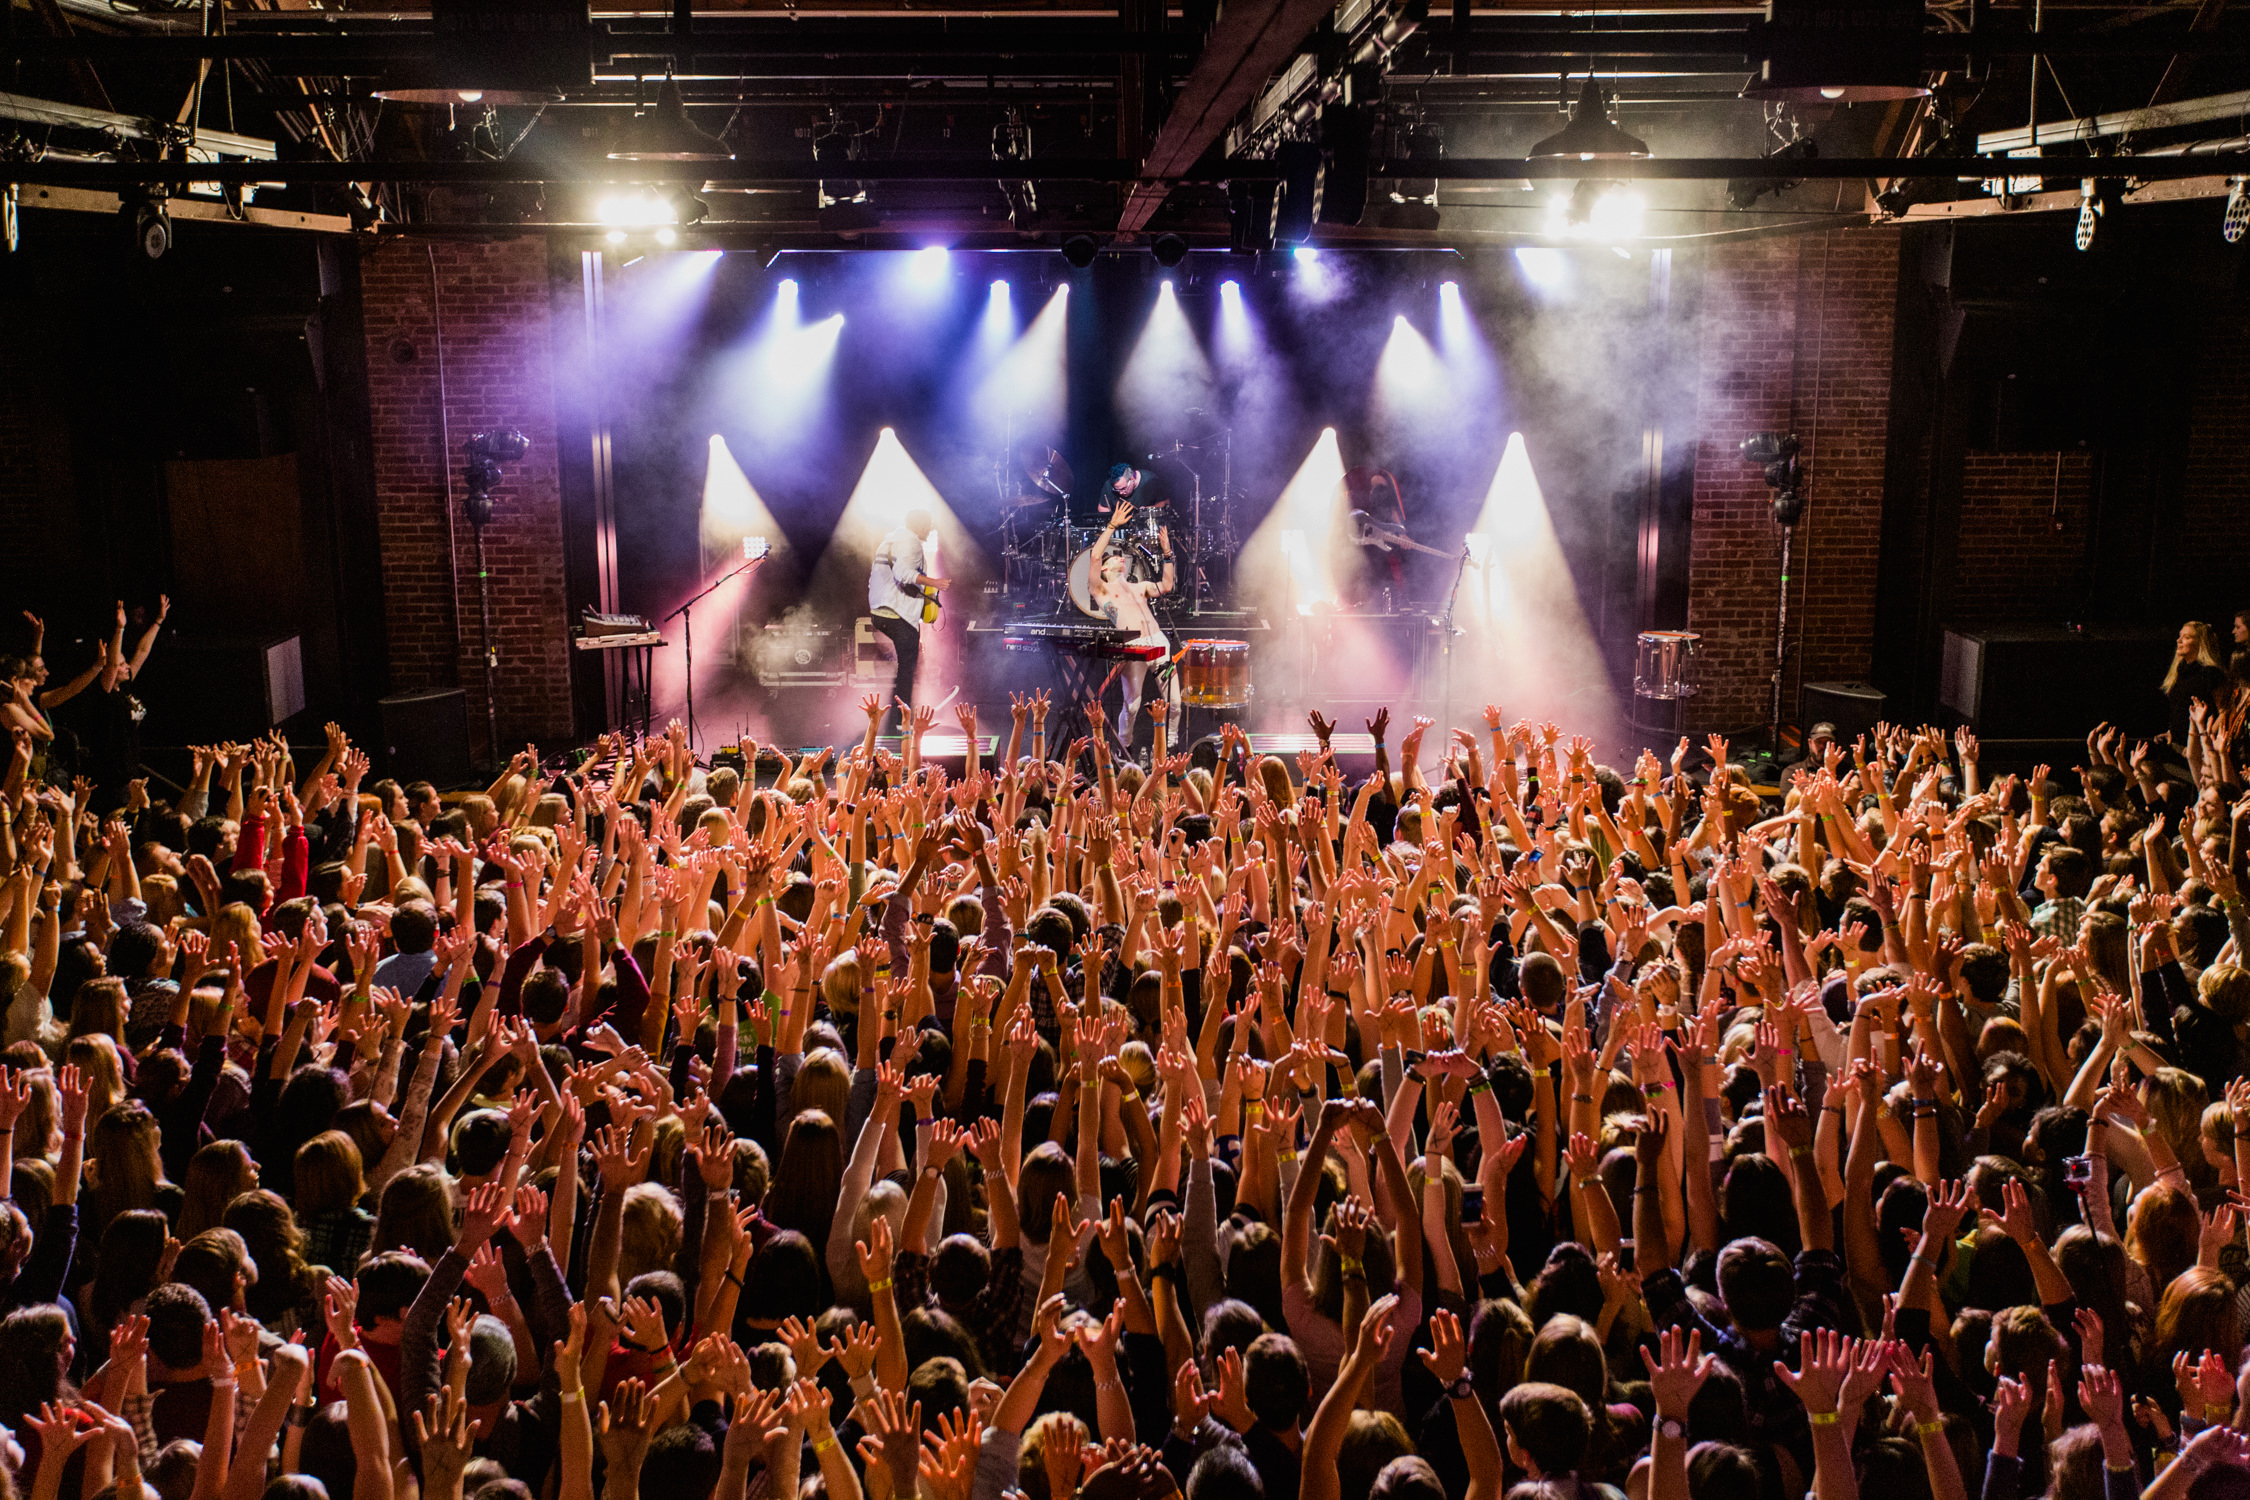 walk-the-moon-live-show-iron-city-venue-crowd-hands-up-AnnaLeeMedia